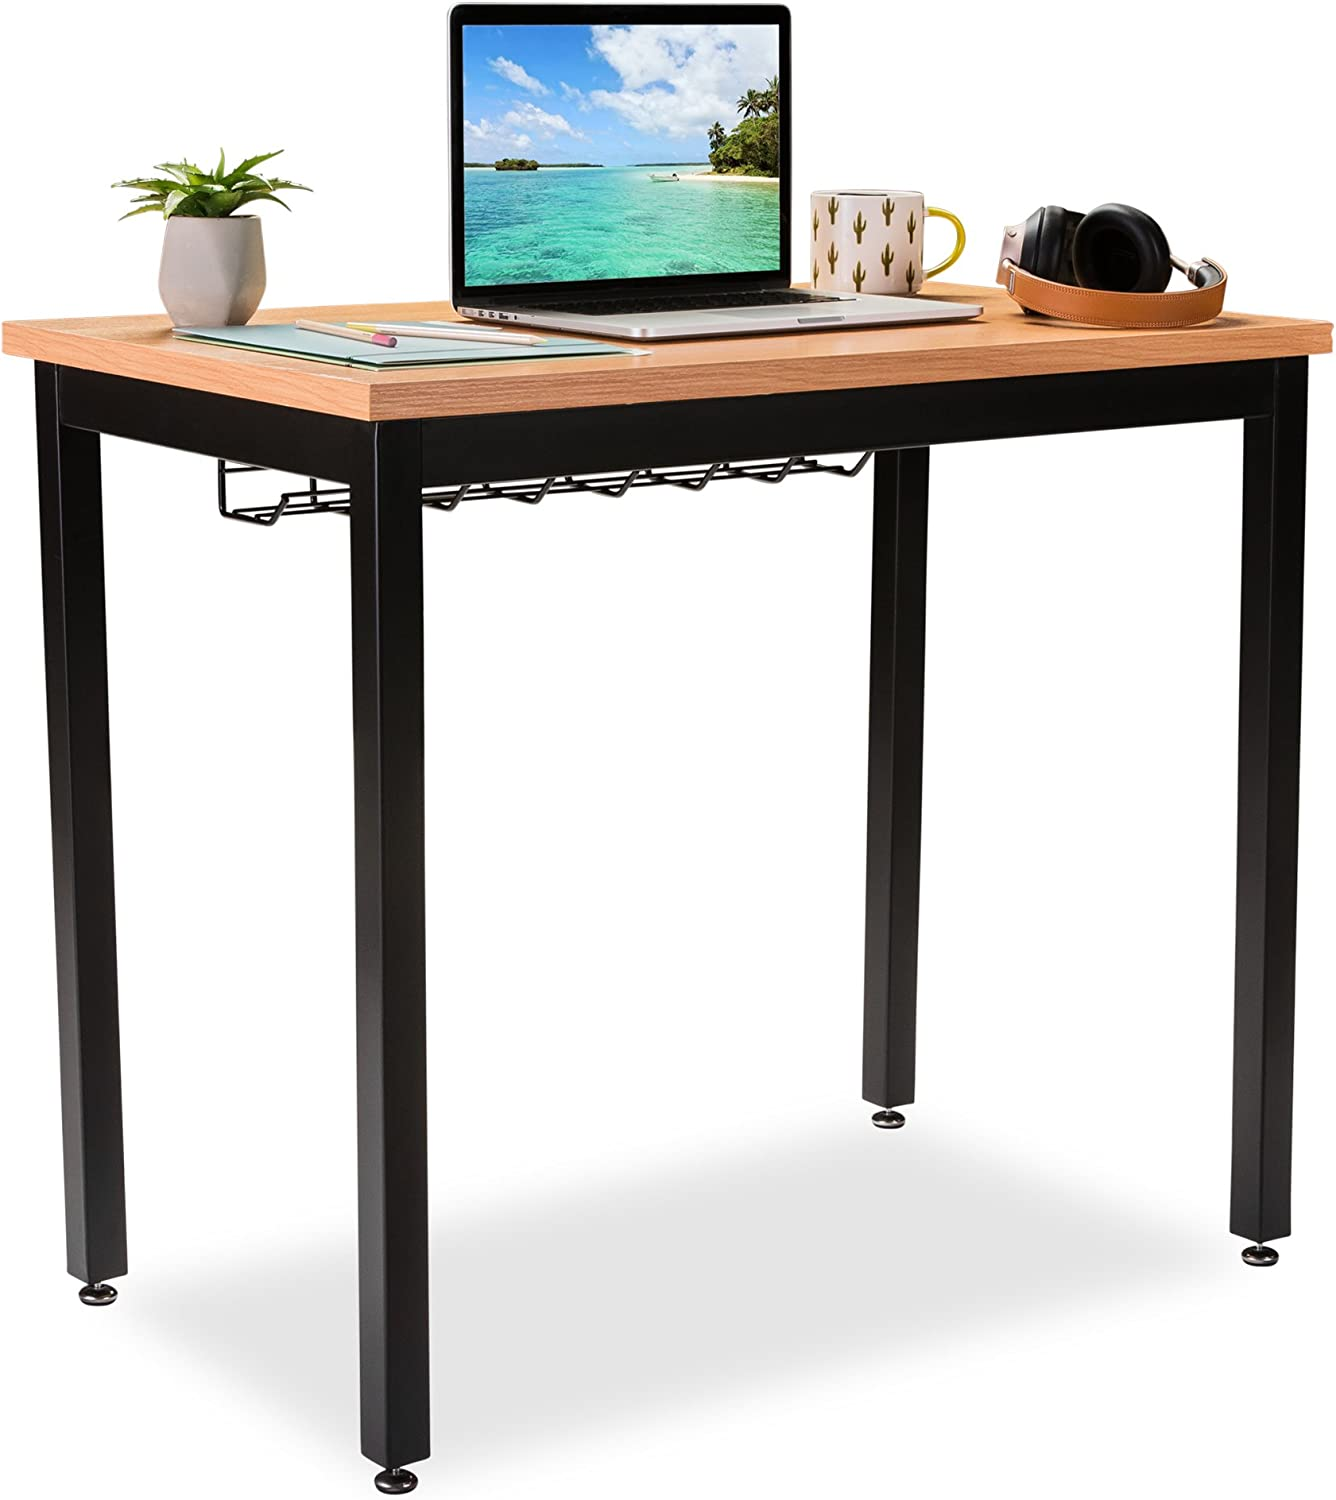 Amazon Com Small Computer Desk For Home Office 36 Length Table W Cable Organizer Sturdy And Heavy Duty Writing Desk For Small Spaces And Students Laptop Use Damage Free Promise Pear Kitchen Dining